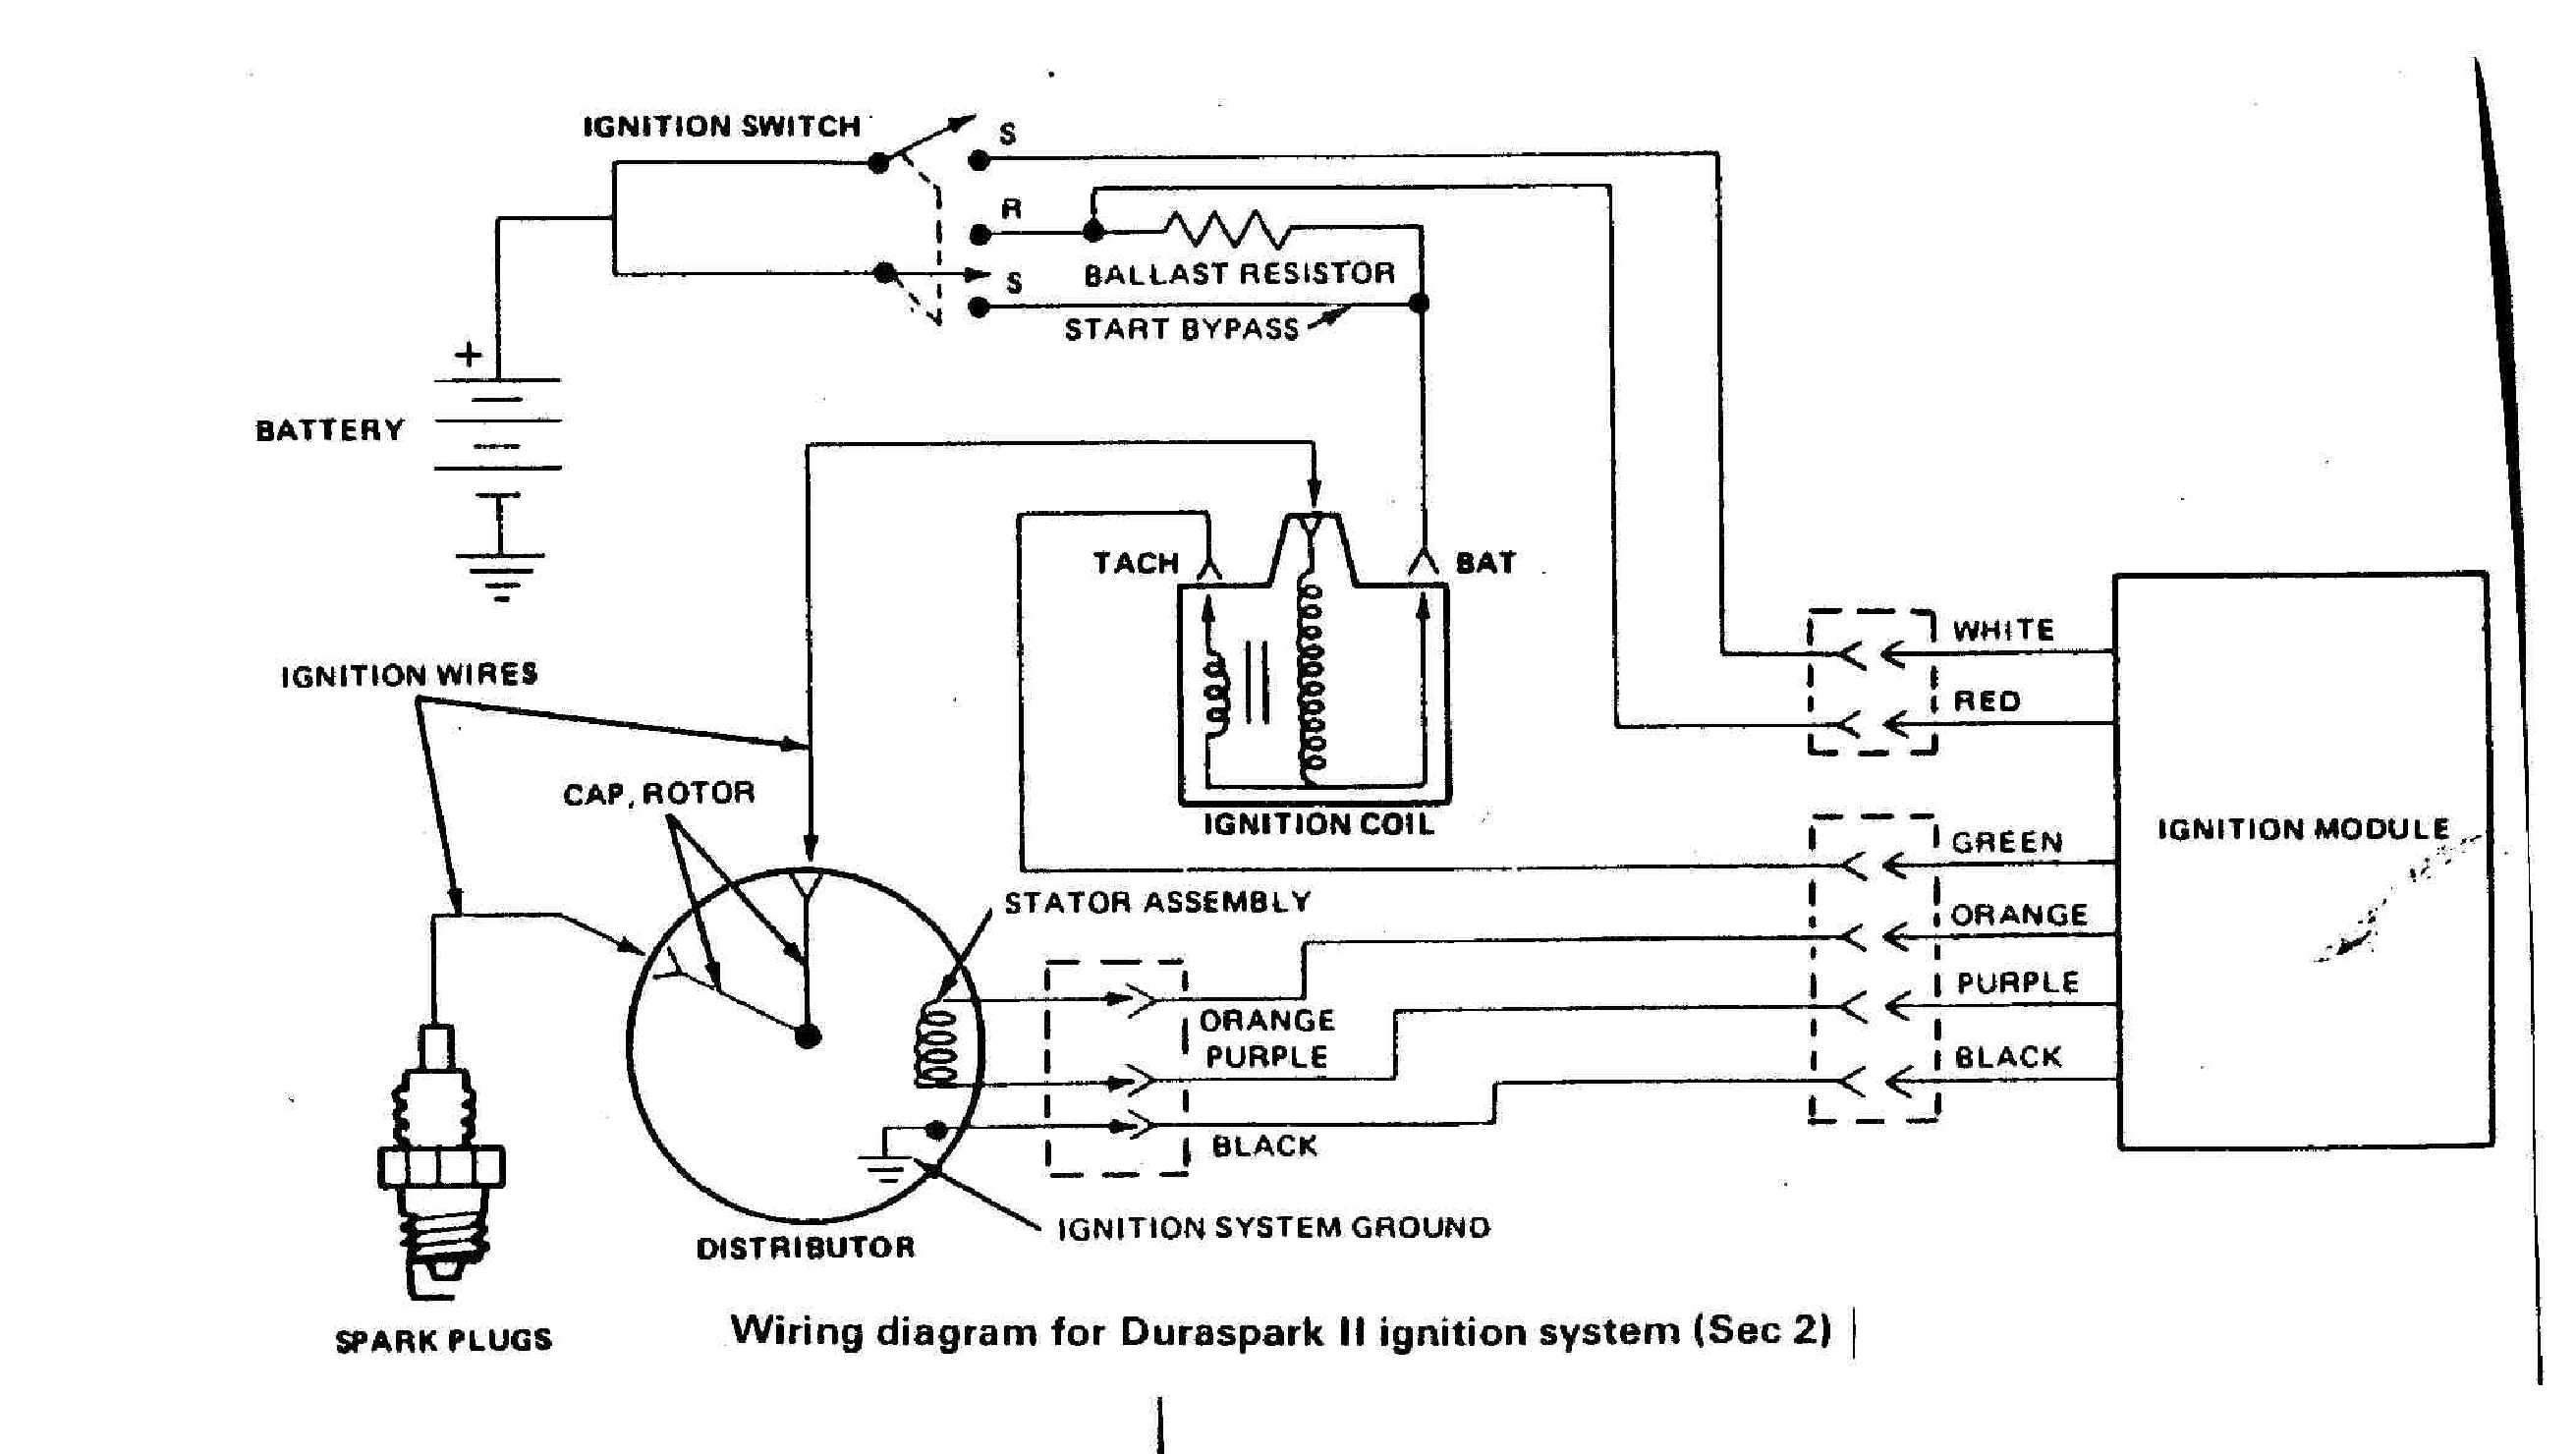 1977 Ford Starter Wiring Archive Of Automotive Diagram Solenoid 78 Pinto Blog About Diagrams Rh Clares Driving Co Uk F250